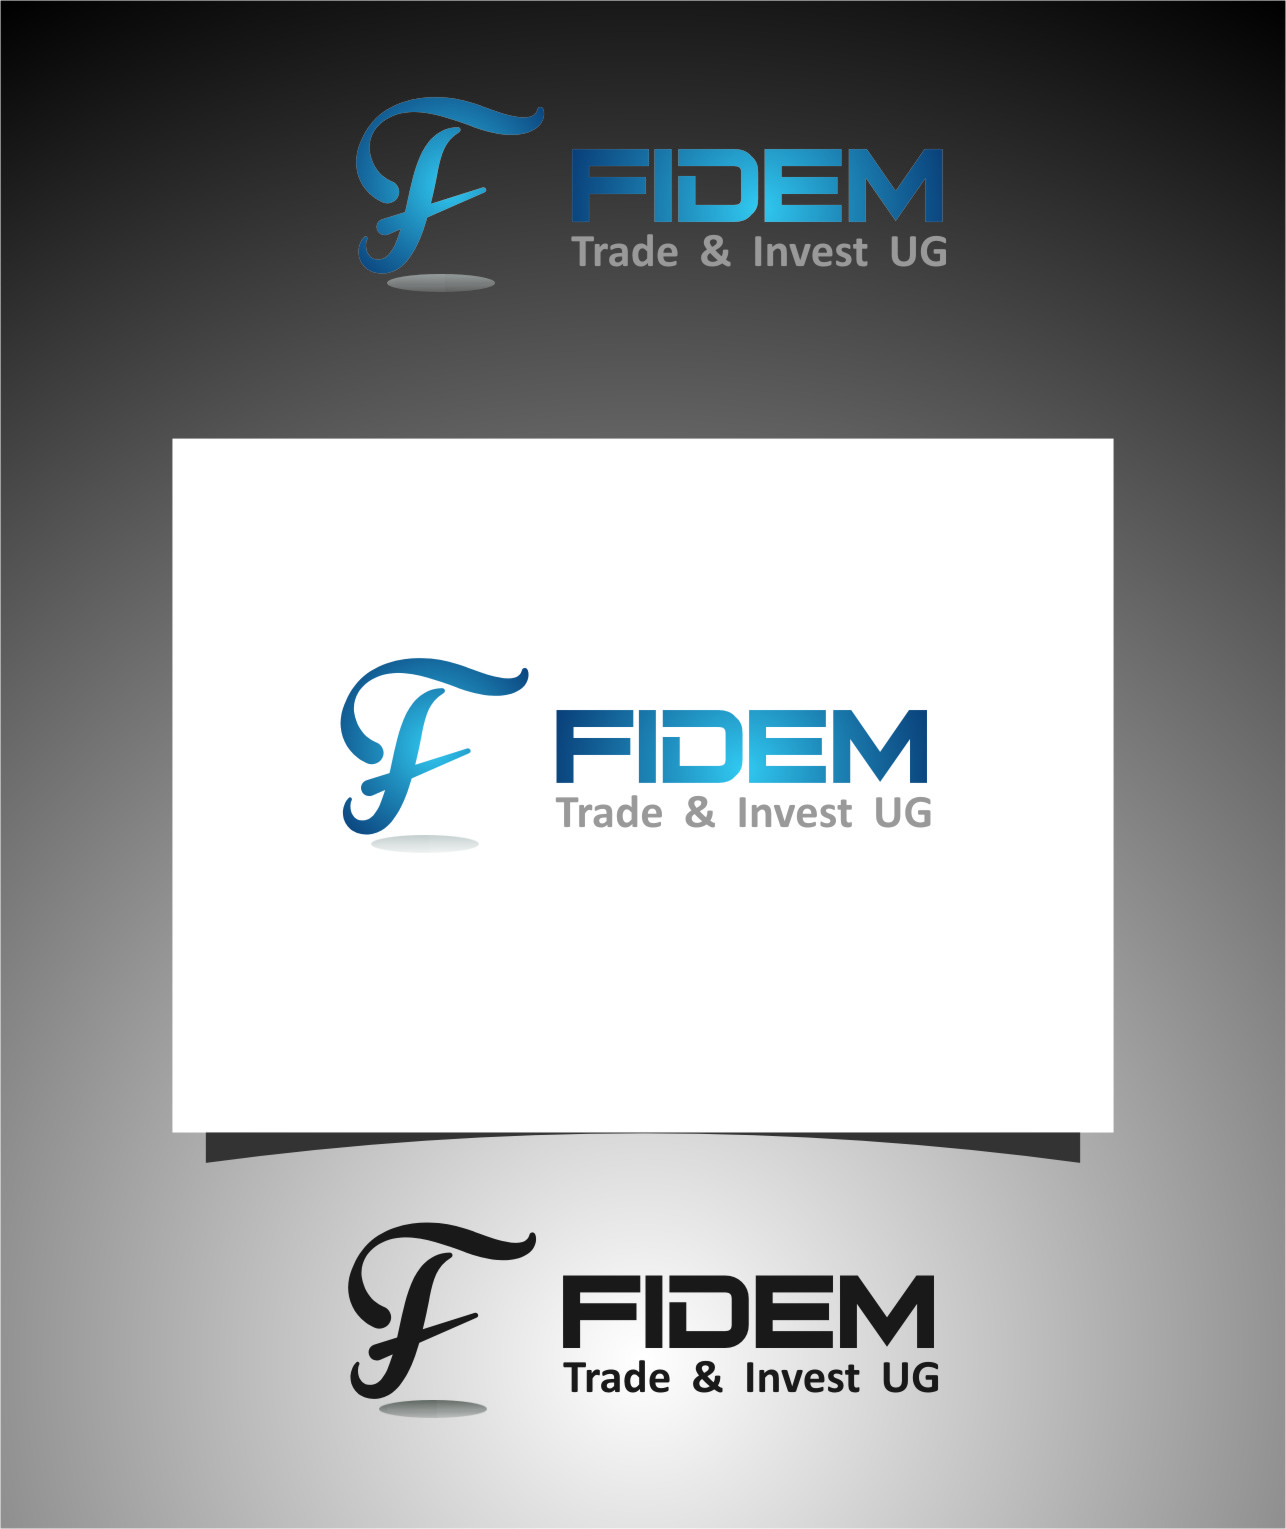 Logo Design by Ngepet_art - Entry No. 141 in the Logo Design Contest Professional Logo Design for FIDEM Trade & Invest UG.